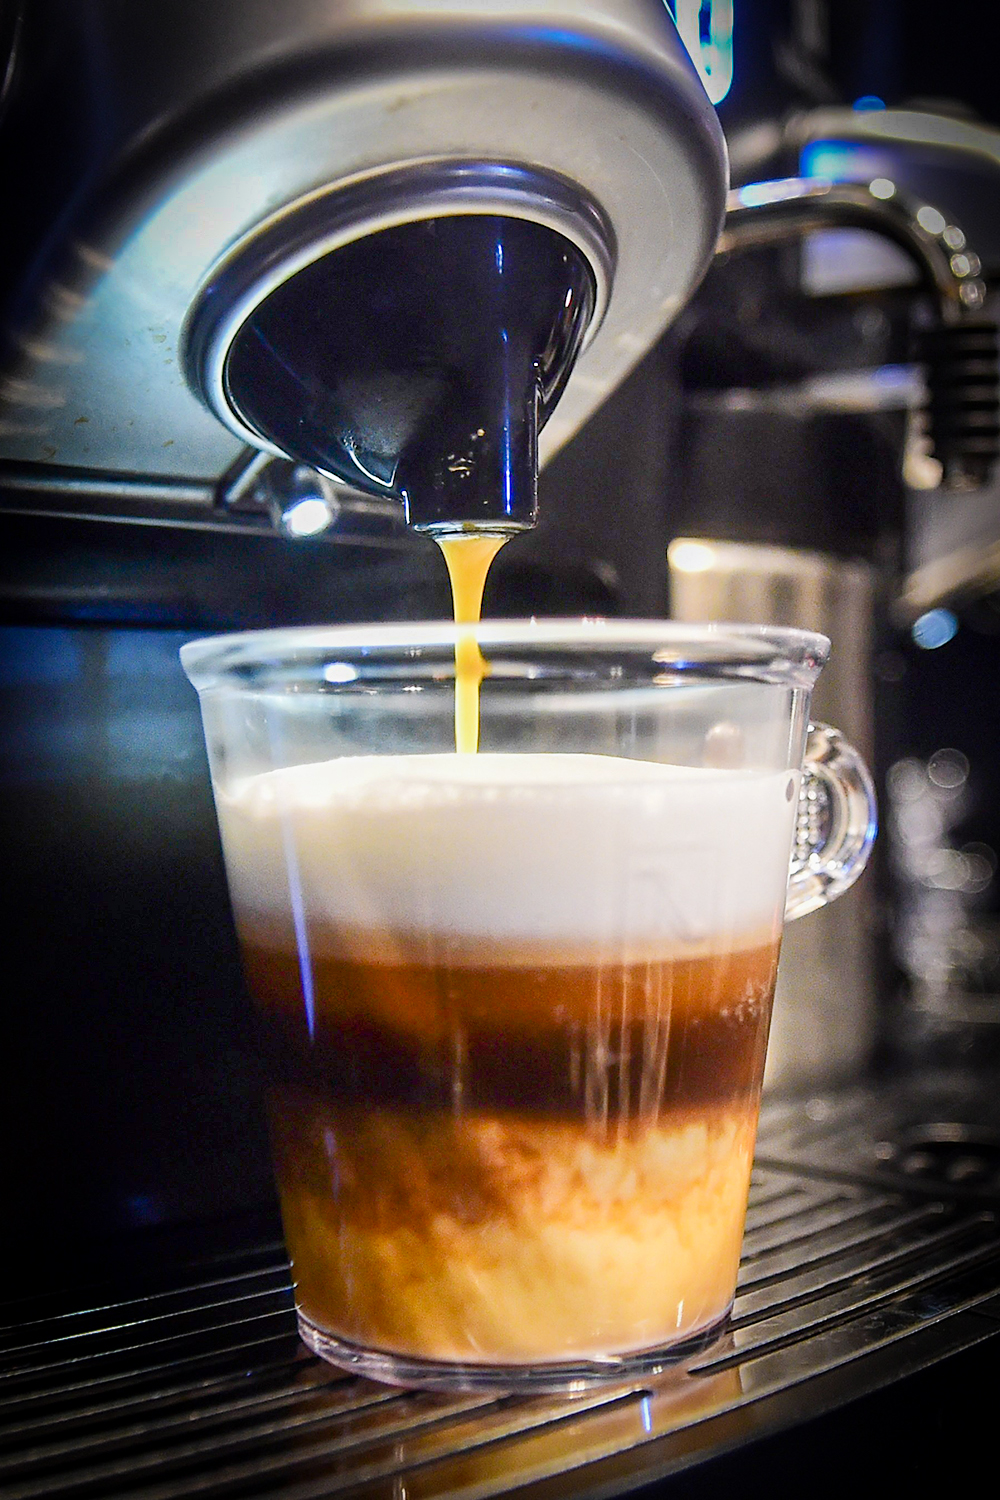 A triple-layered espresso pouring into a clear mug from Nespresso Gemini CS200 pro coffee machine